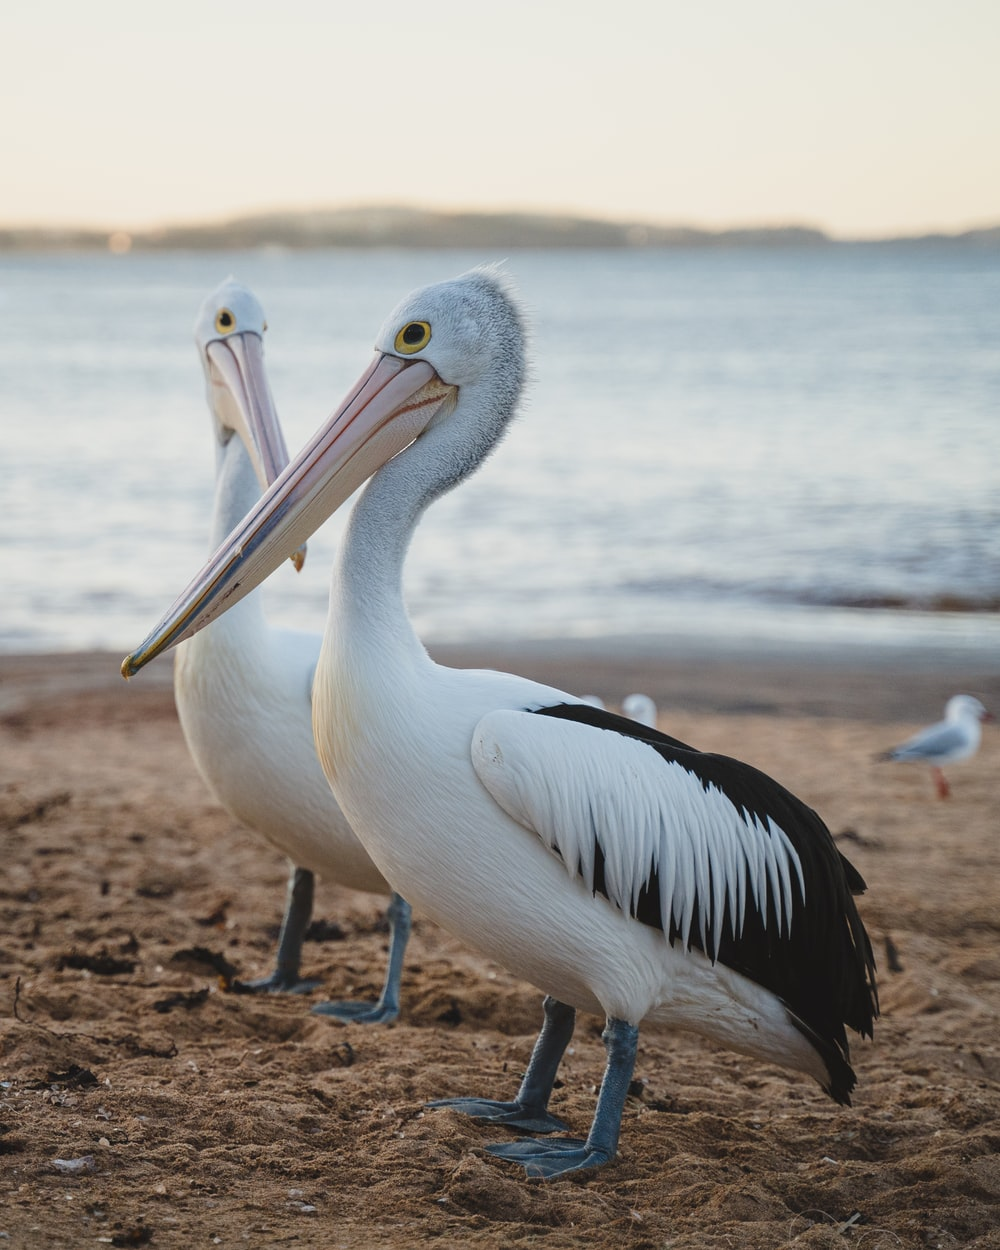 white pelican on brown sand near body of water during daytime